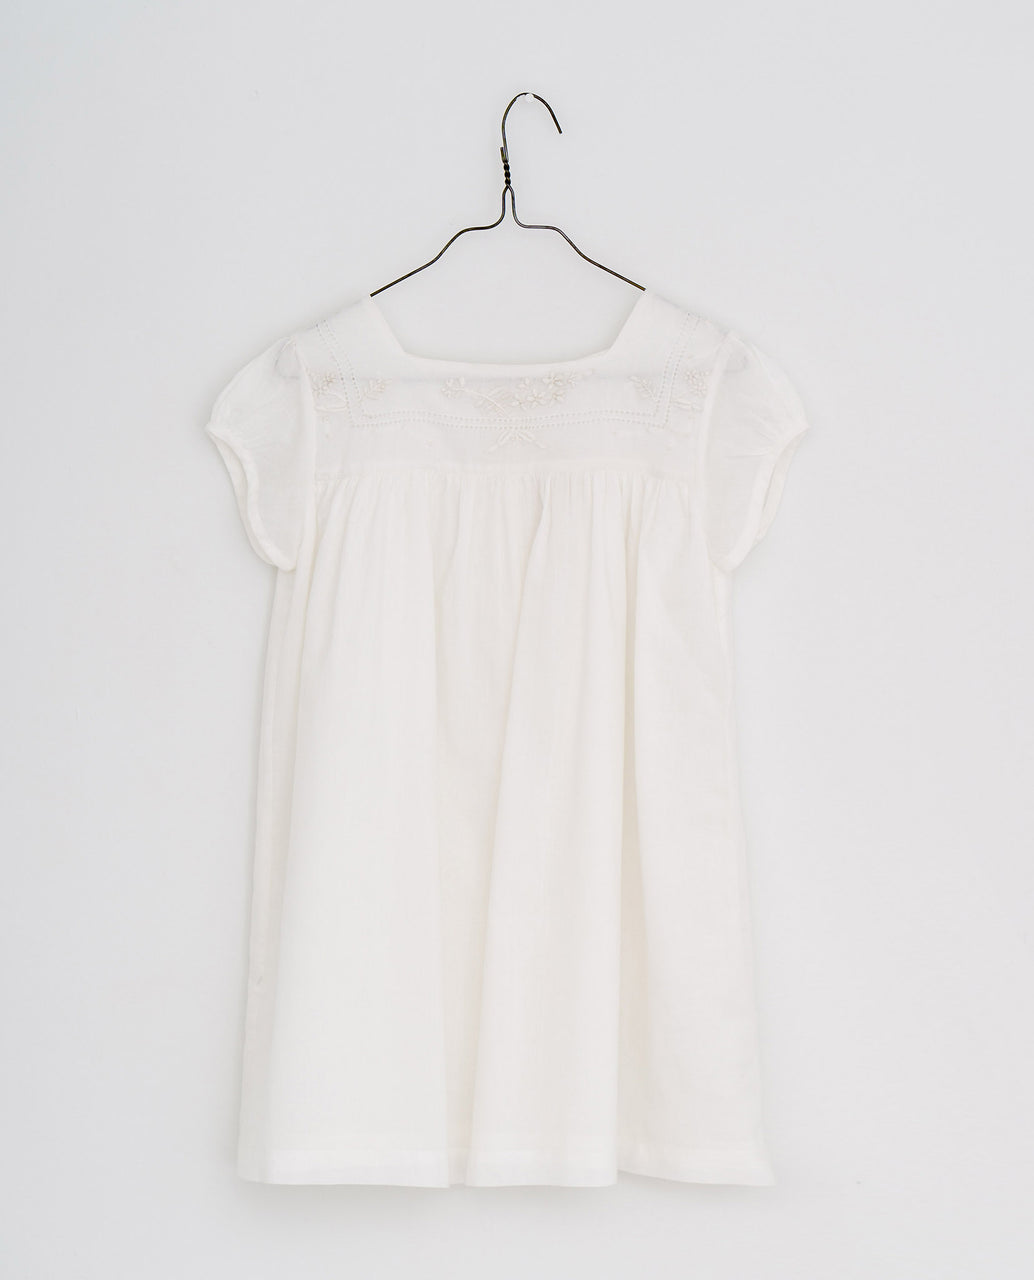 Jolie dress with embroidered yoke - off white voile